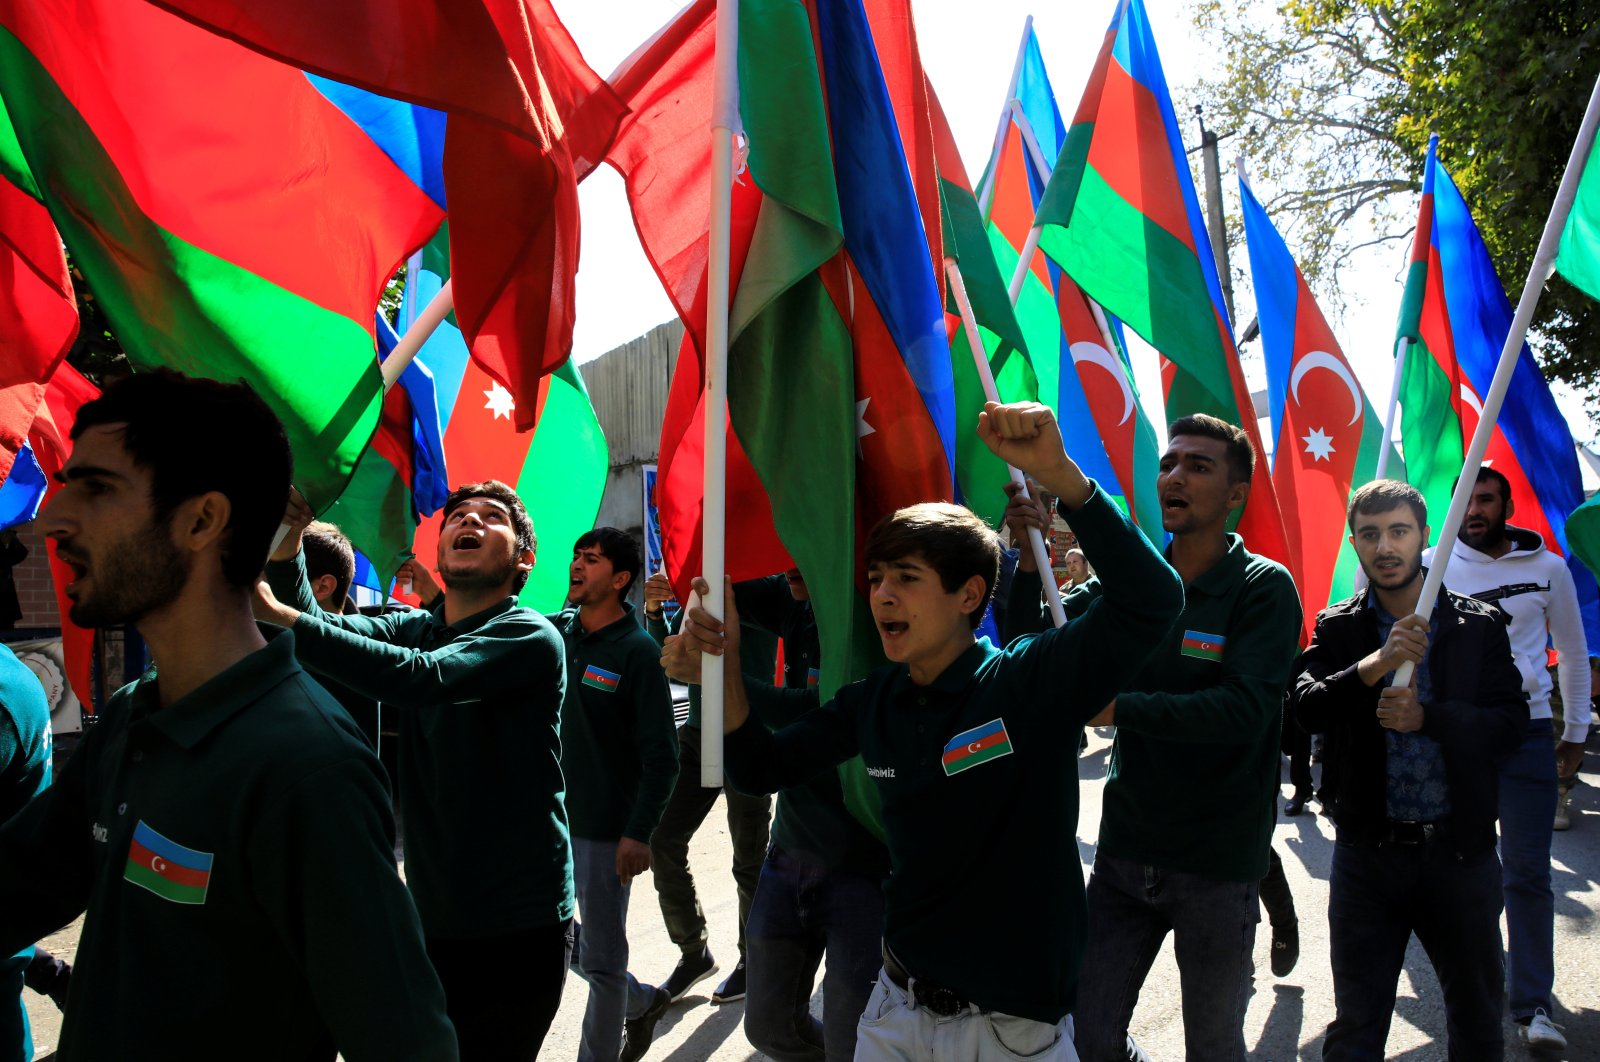 People hold Azerbaijan's national flags and shout slogans during the funeral of civilians killed in Ganja attack during the fighting over the occupied Nagorno-Karabakh region, in the city of Shamkir, Azerbaijan, Oct. 12, 2020. (REUTERS Photo)